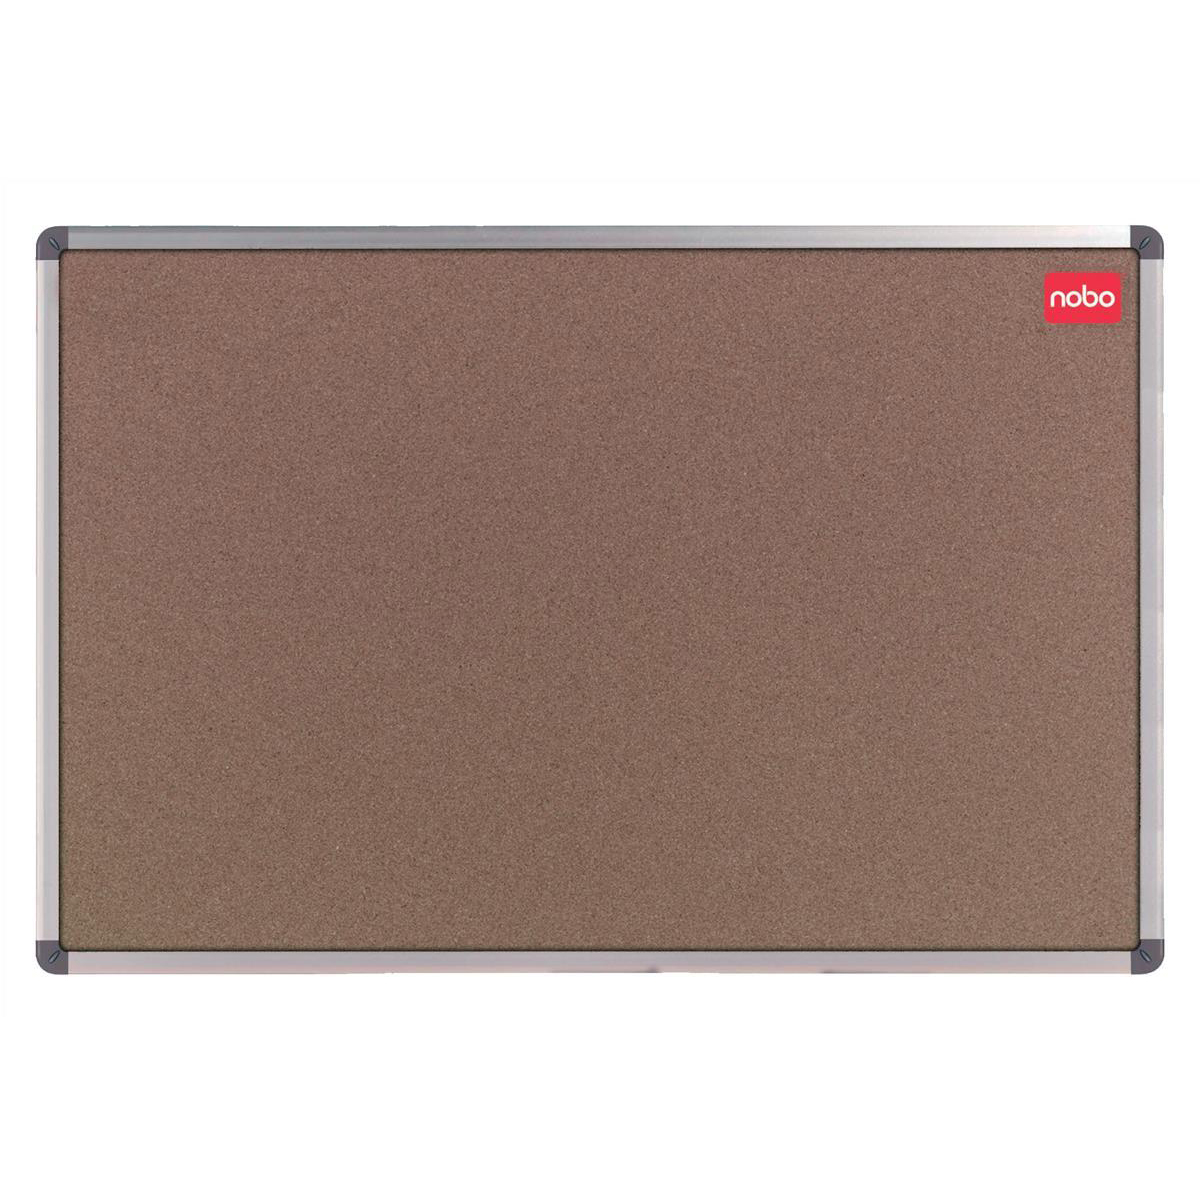 Cork Nobo Classic Office Noticeboard Cork with Fixings and Aluminium Trim W1200xH900mm Ref 30530321